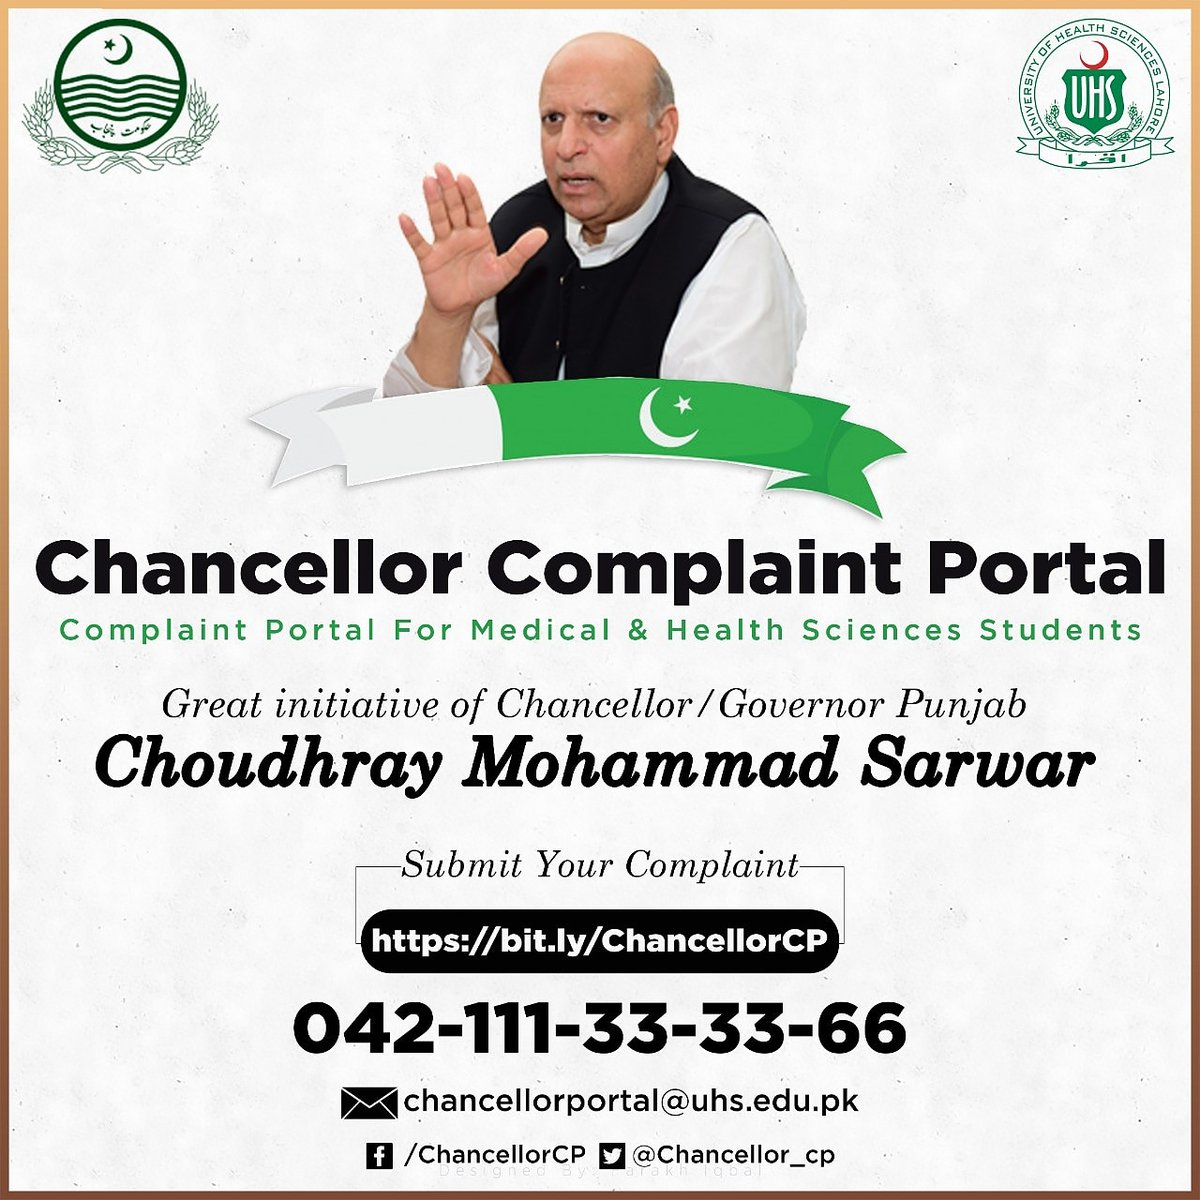 Great initiative of Honourable Chancellor/Governor Punjab Choudhray Mohammad Sarwar. Submit your complaints: bit.ly/ChancellorCP Helpline 24/7 111-33-33-66 Social media platforms facebook.com/ChancellorCP twitter.com/chancellor_cp Email: chancellorportal@uhs.edu.pk